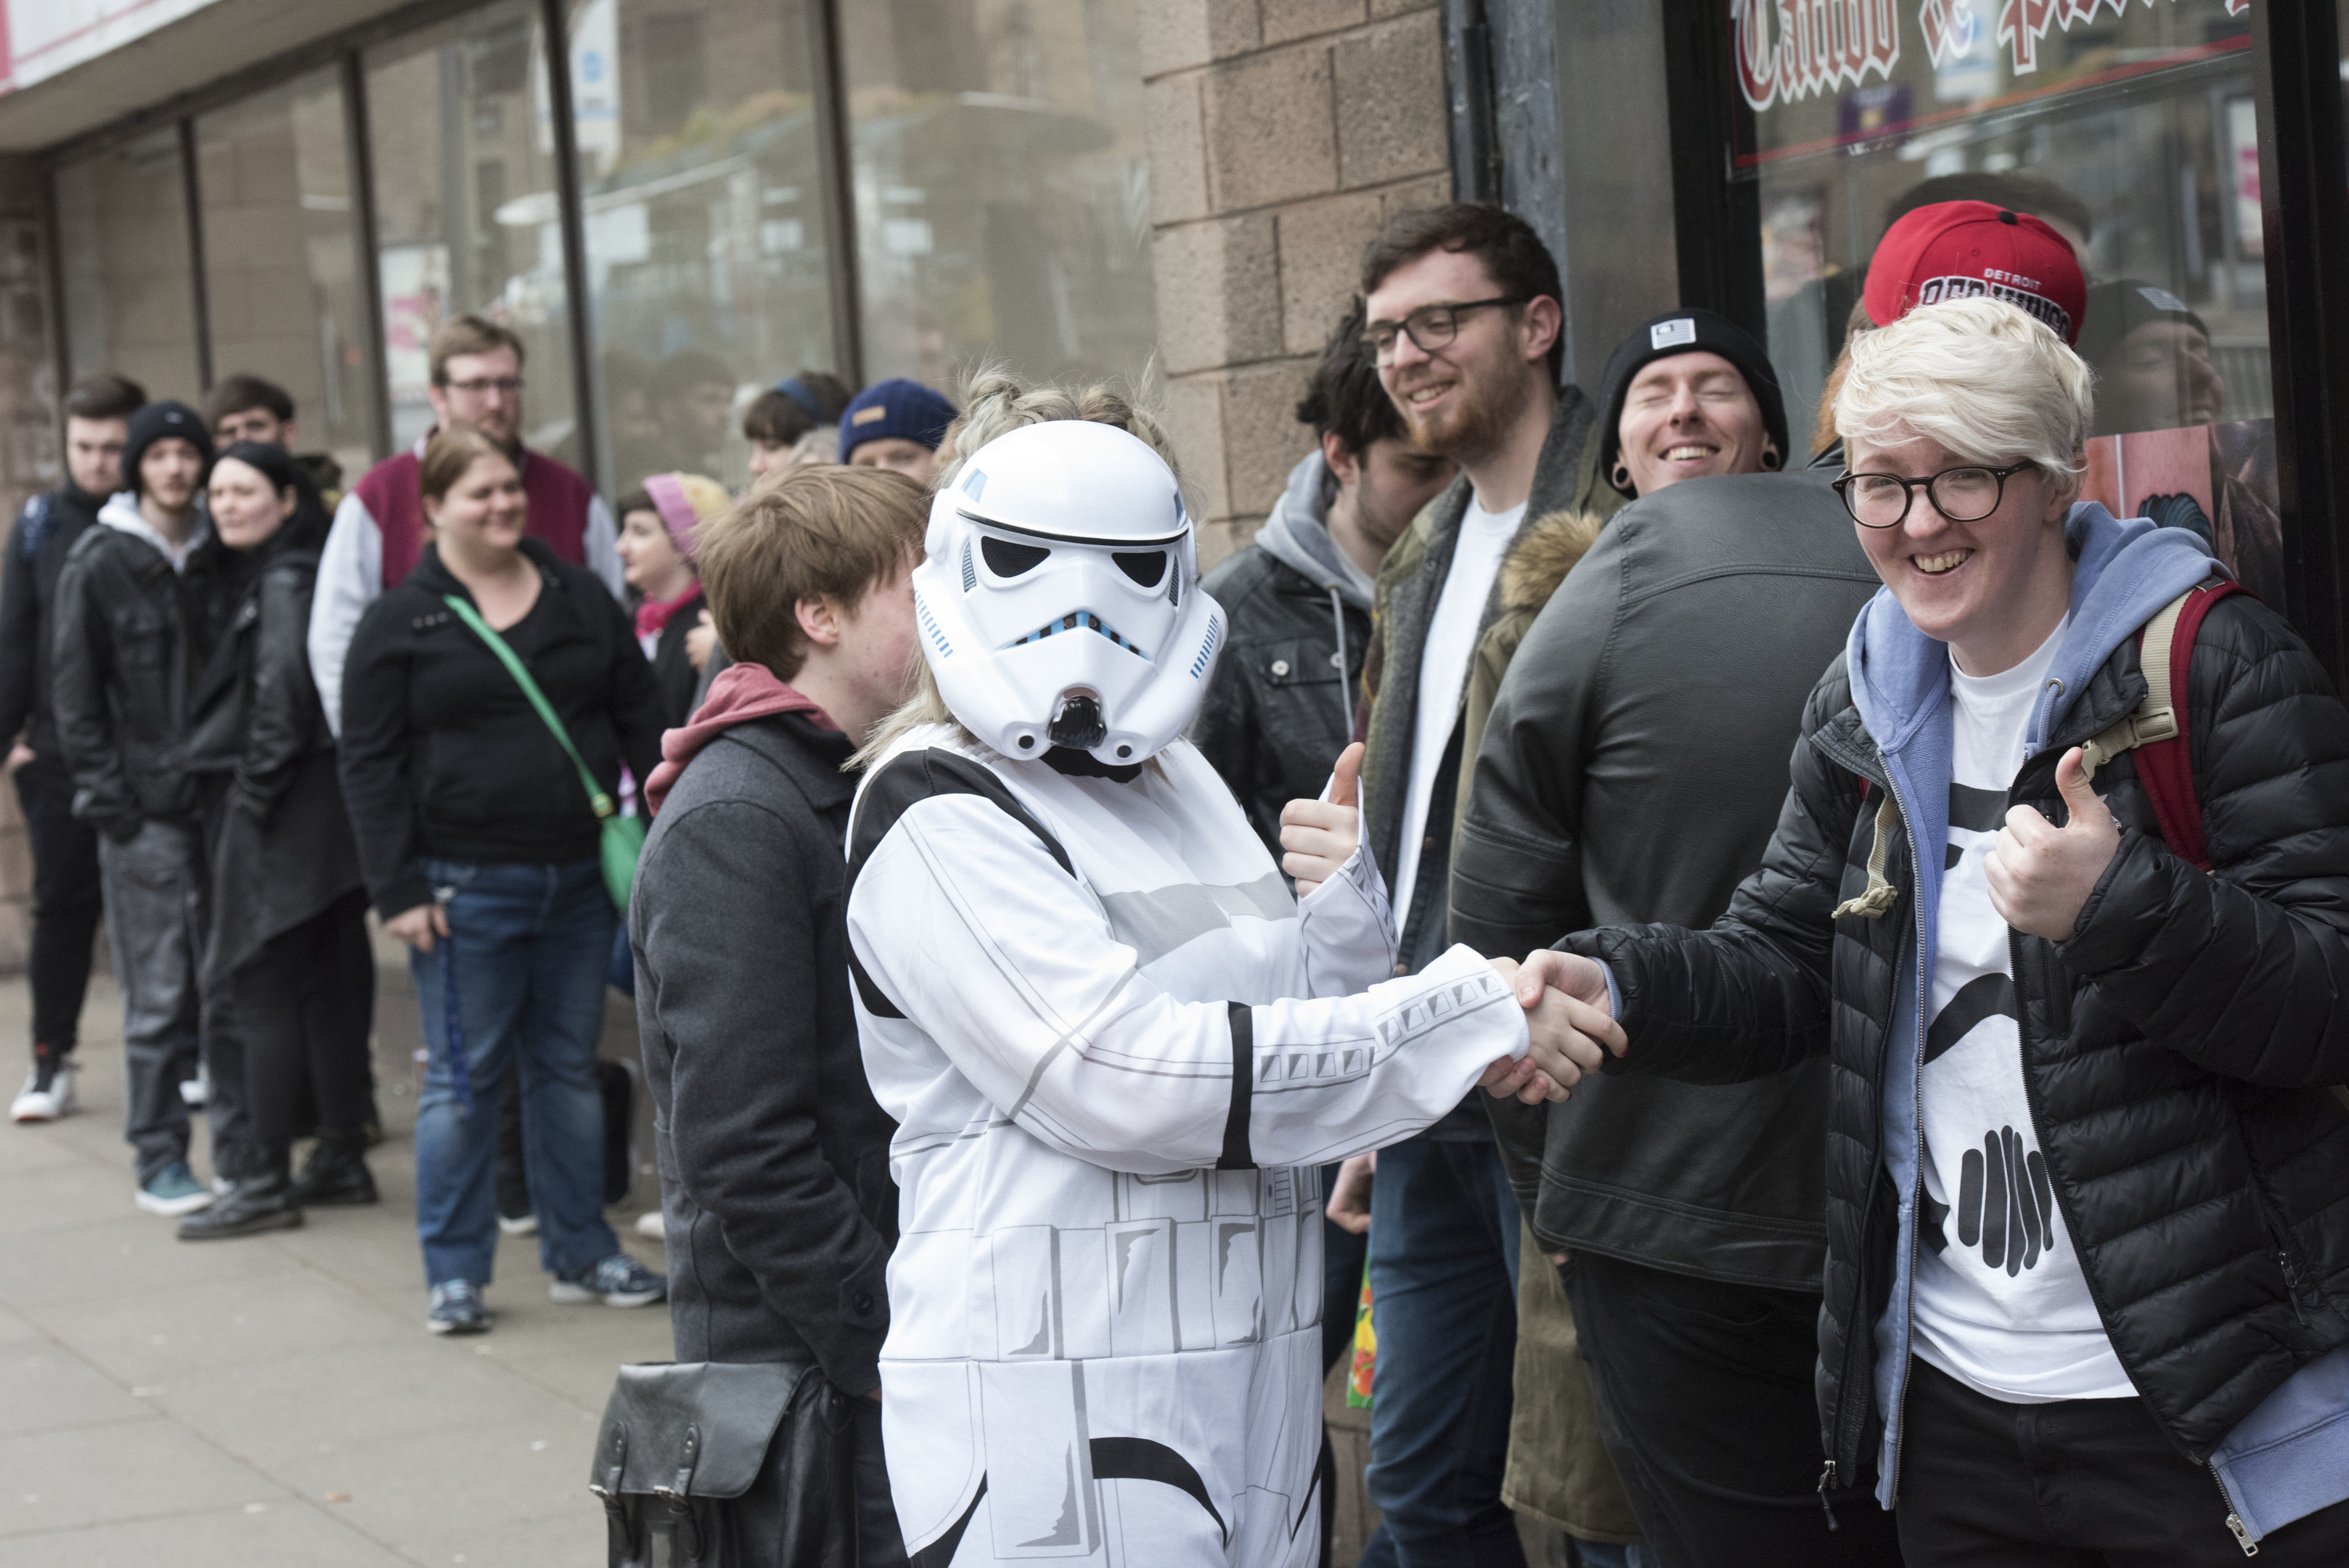 Fans gather outside Rock n Roll Tattoo and Piercing and are greeted by a stormtrooper.